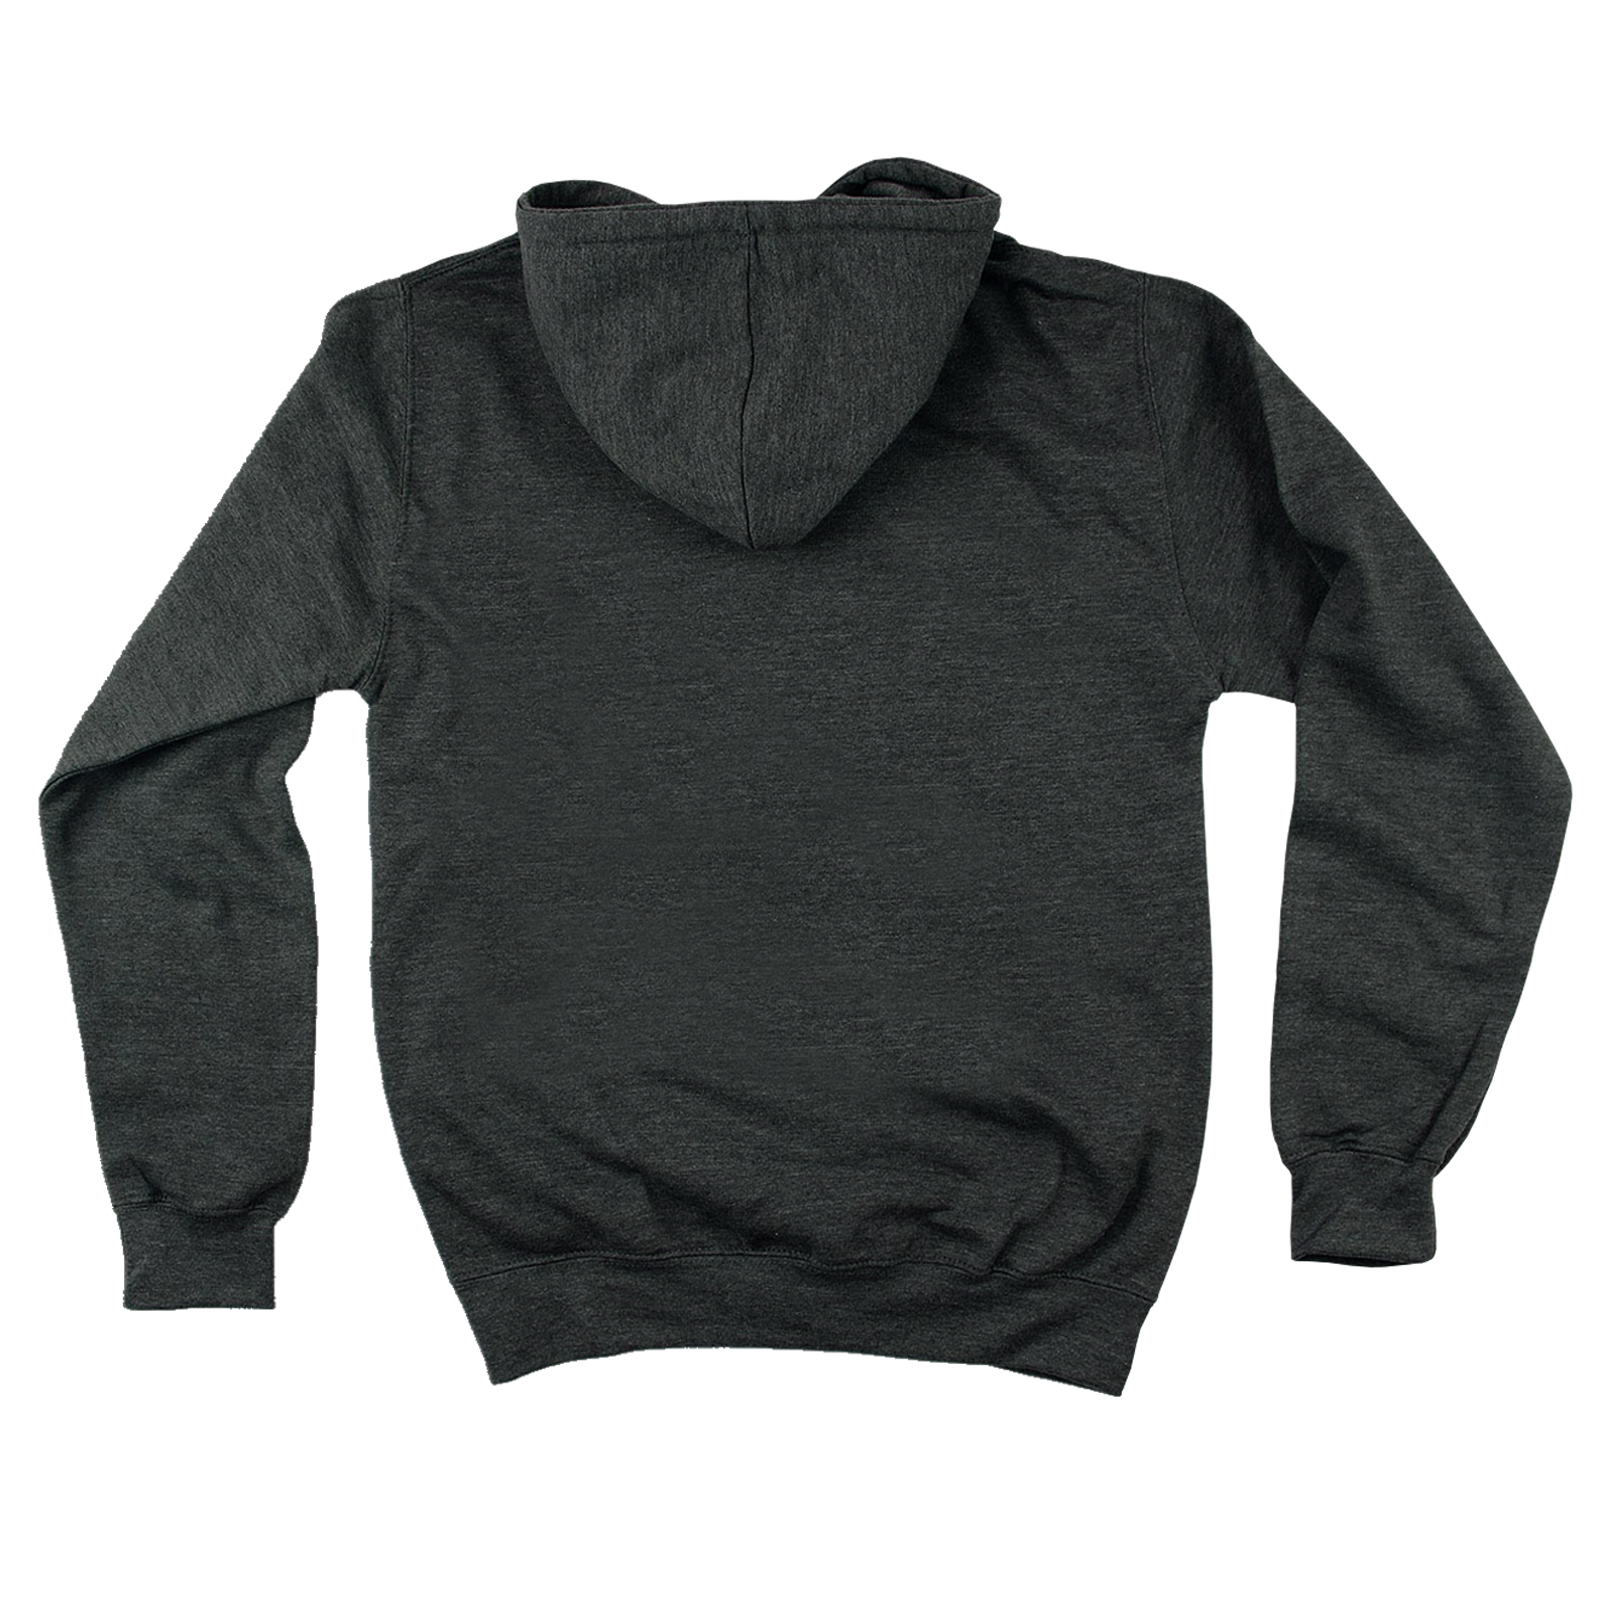 Funny-Novelty-Hoodie-Hoody-hooded-Top-Cat-Enthusiast thumbnail 7